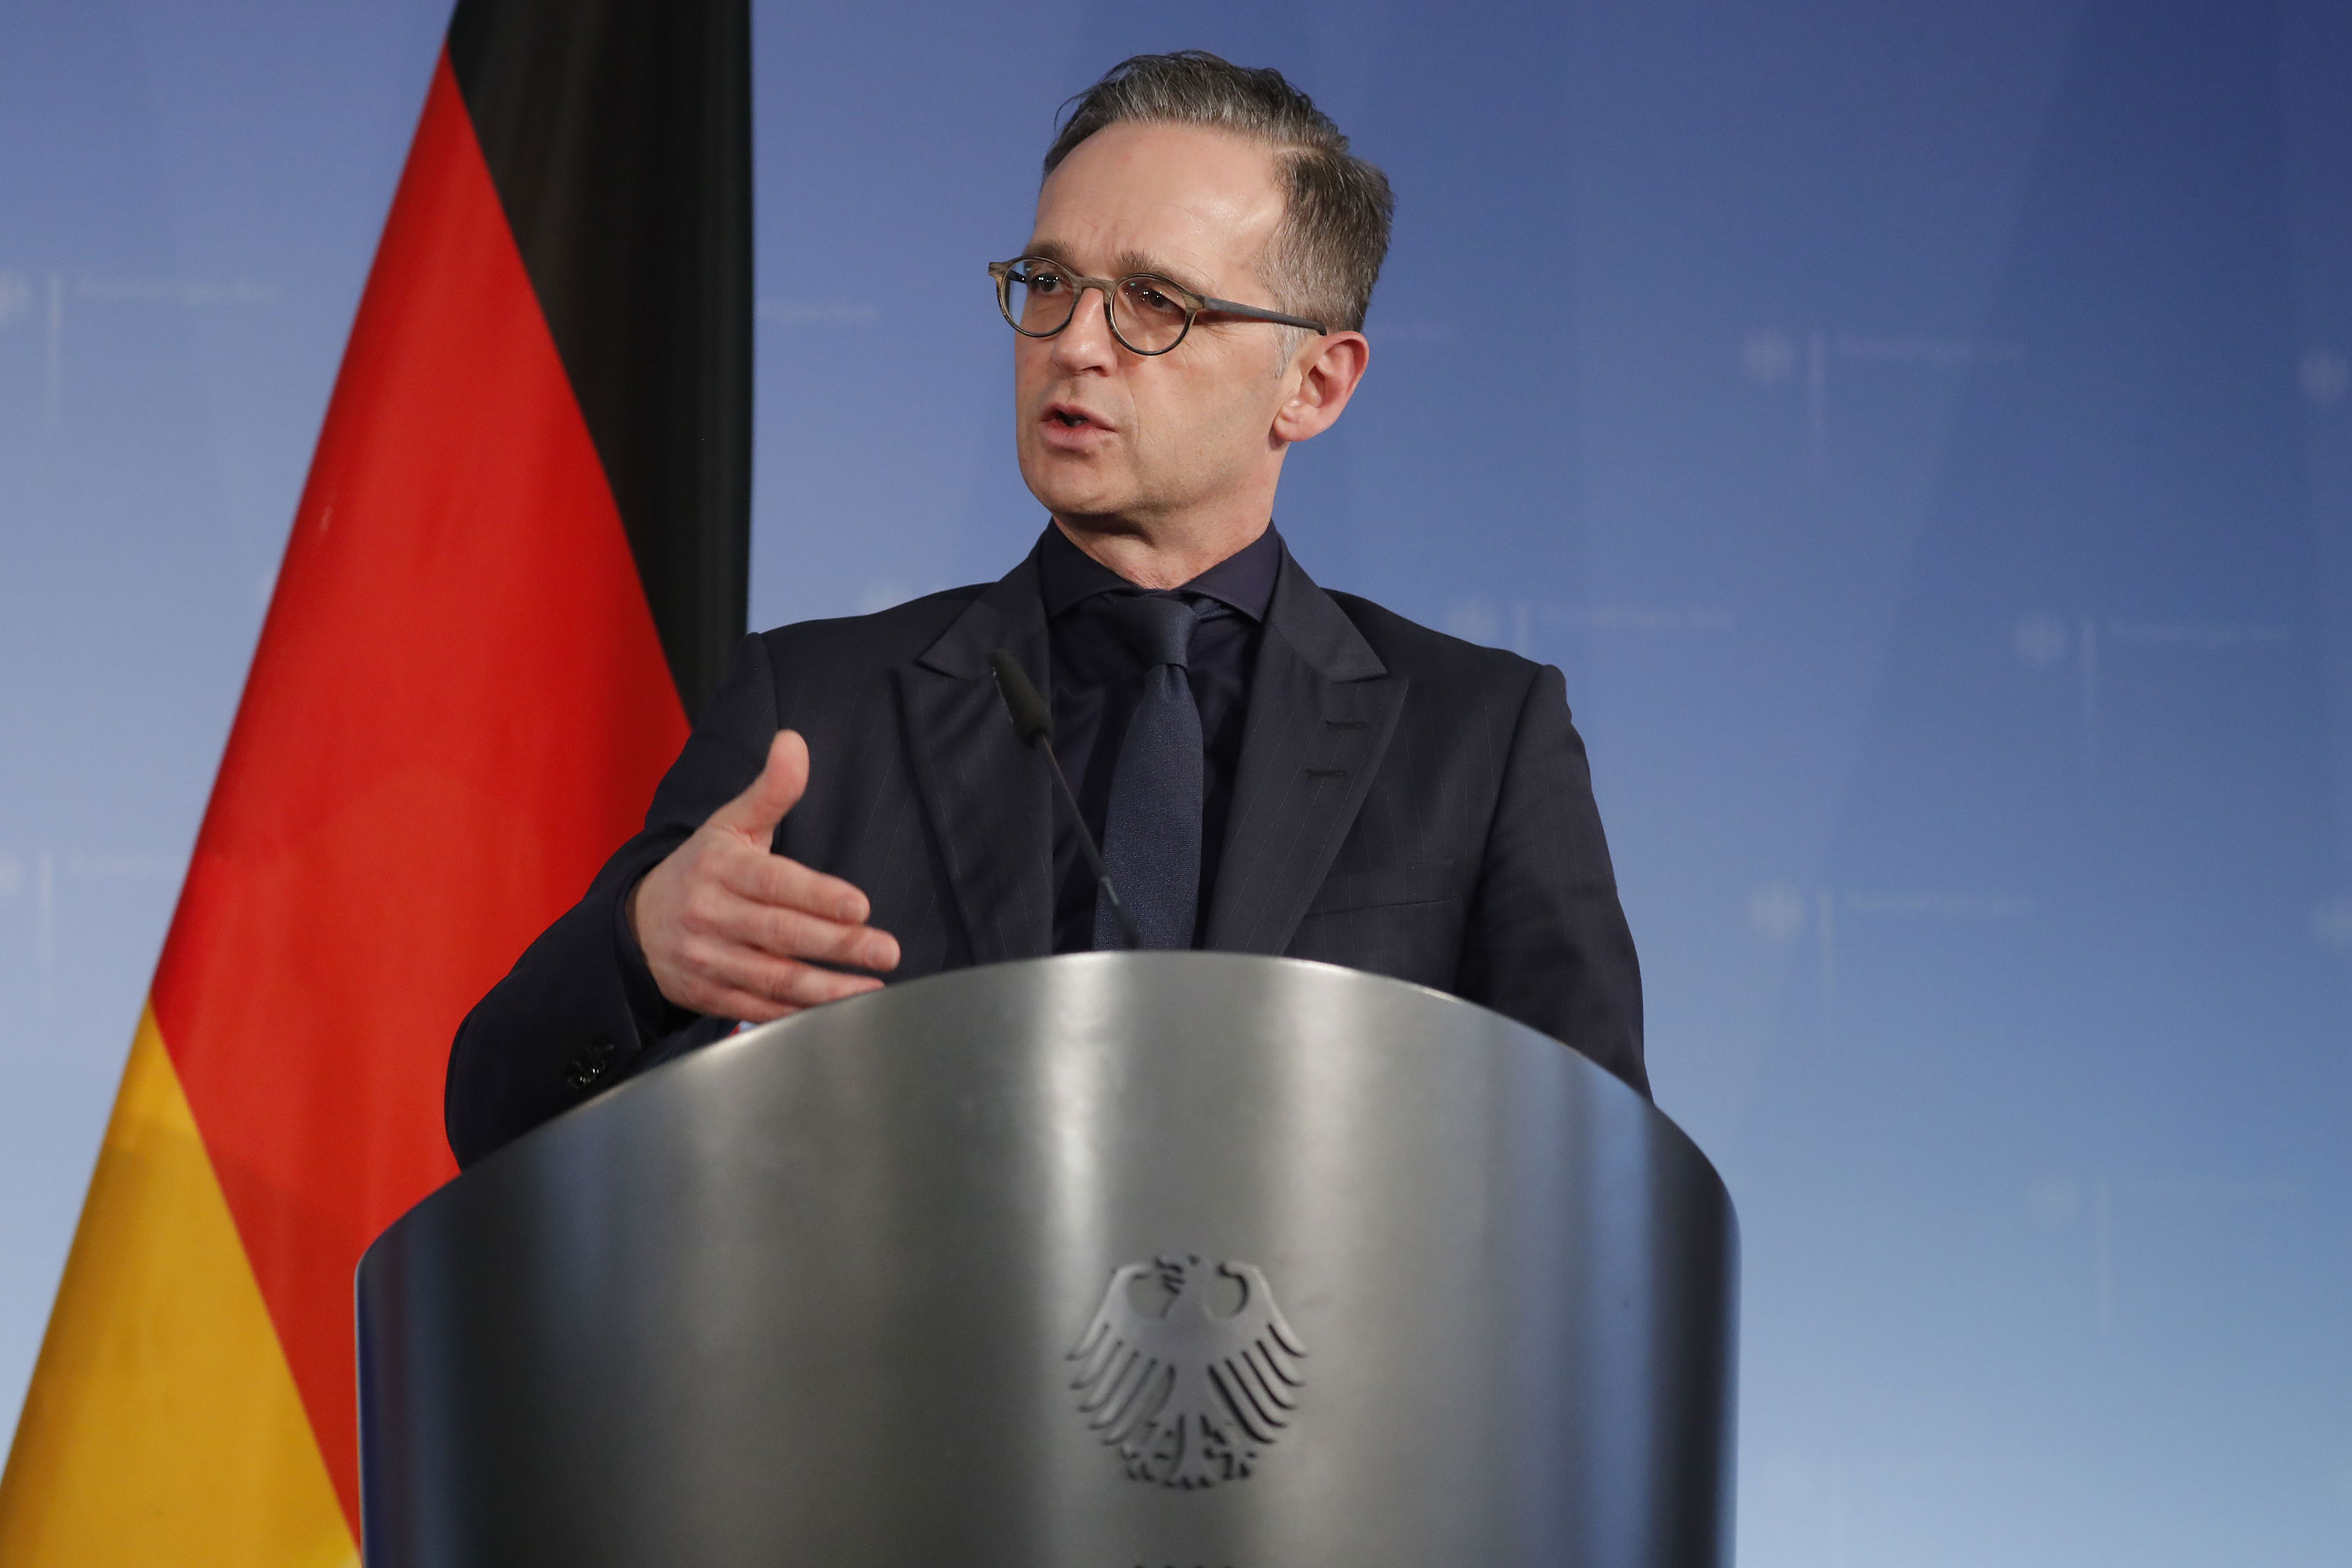 German Foreign Minister Heiko Maas speaks during a press conference in Berlin on March 4.